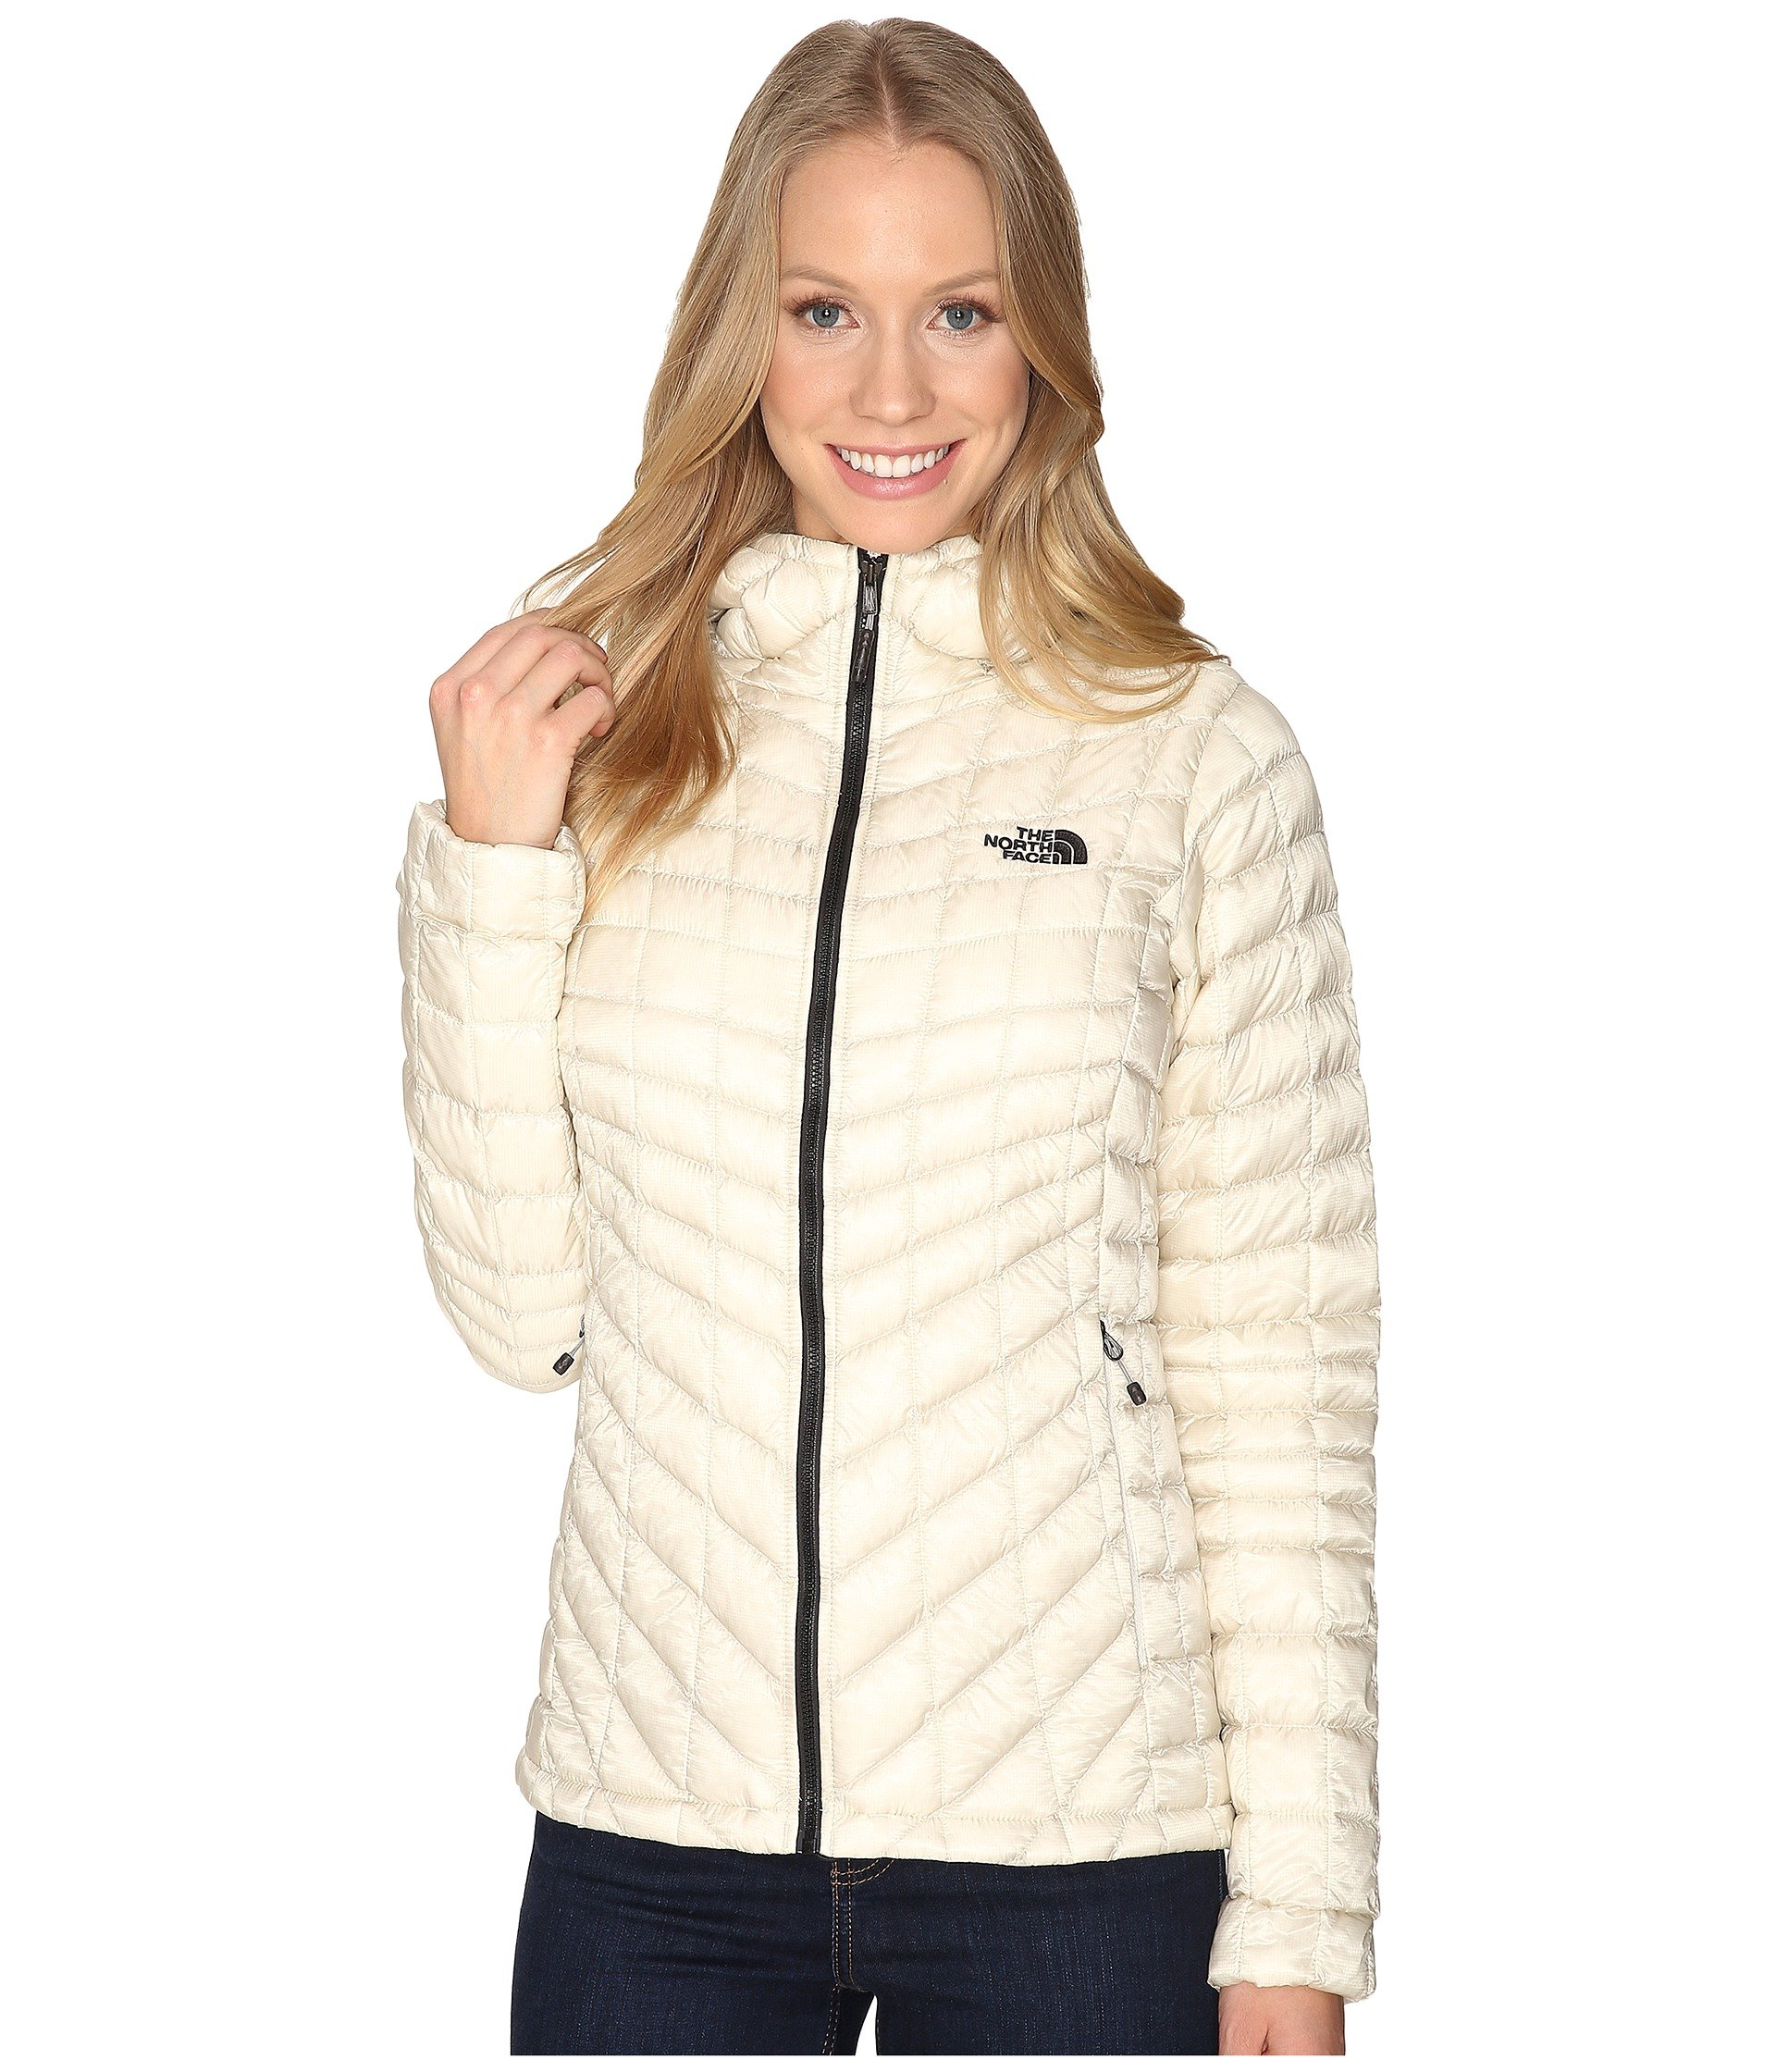 The North Face Women'S Thermoball Hooded Jacket (M, Vintage White)